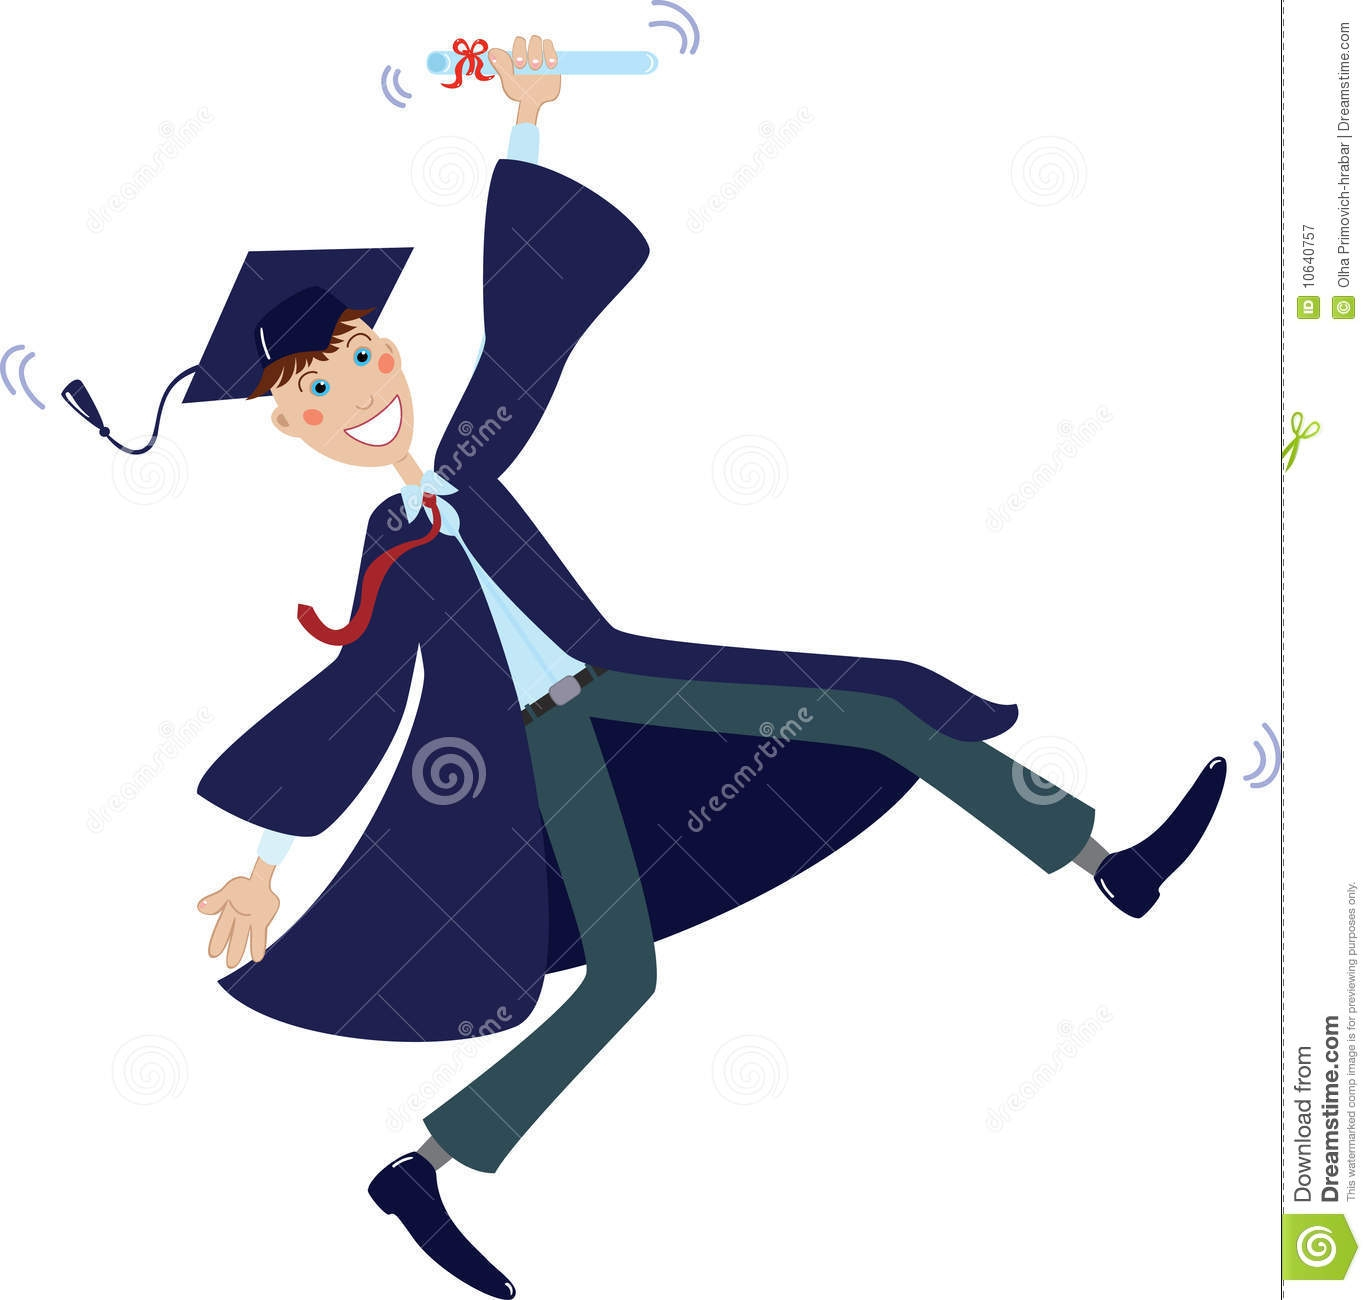 cap and gown drawing at getdrawings com free for personal use cap rh getdrawings com